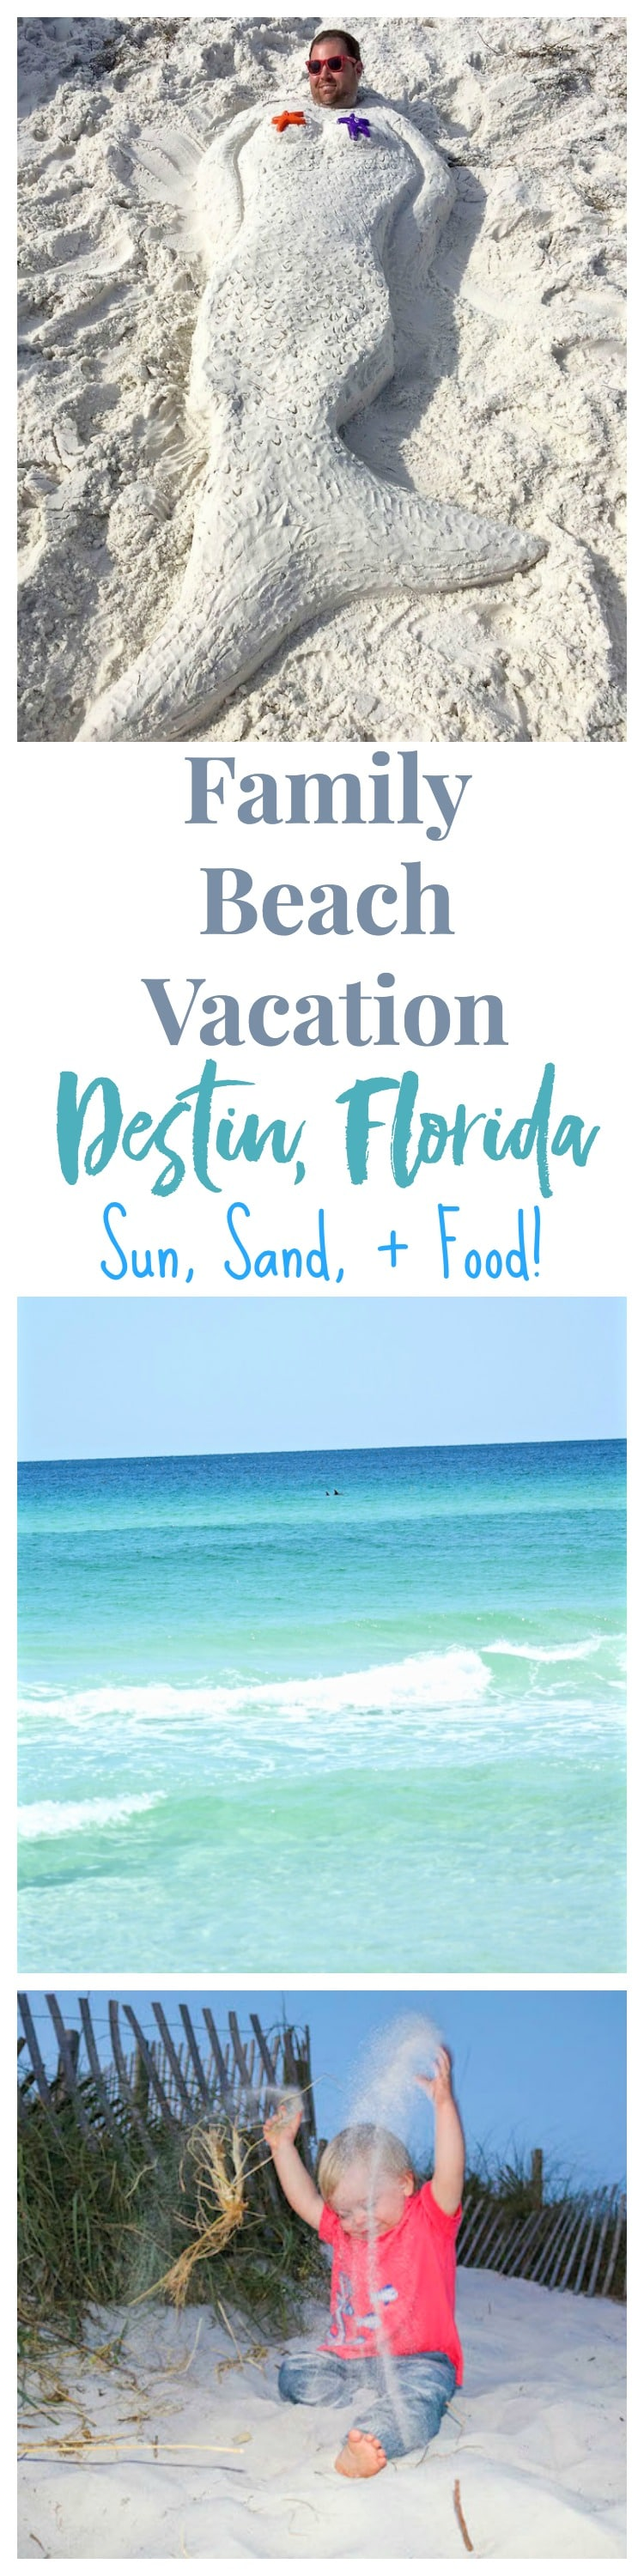 family beach vacation destin, florida pinterest